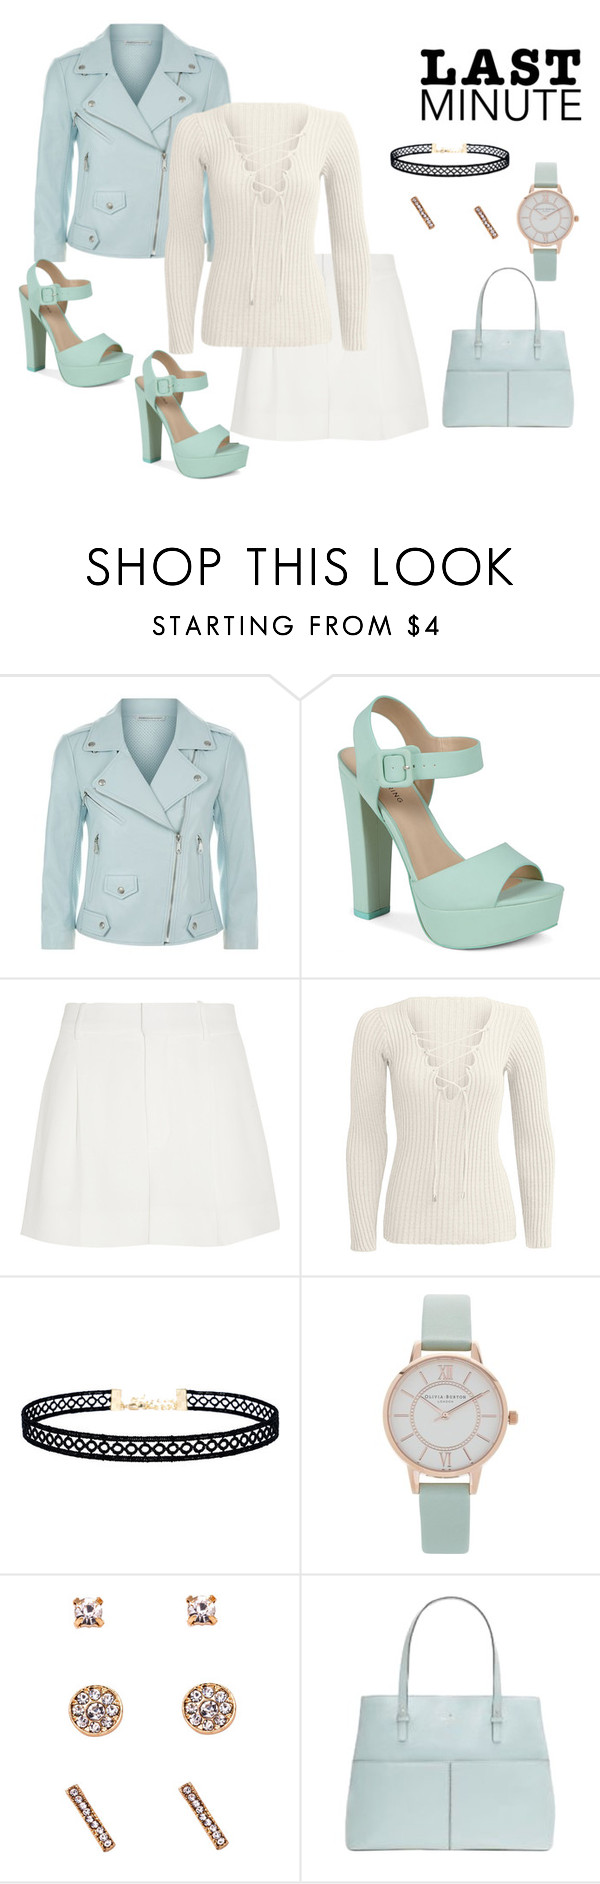 """""""# LAST MIN.*"""" by stitch51 ❤ liked on Polyvore featuring Rebecca Minkoff, Call it SPRING, Chloé, LULUS, Olivia Burton and Kate Spade"""